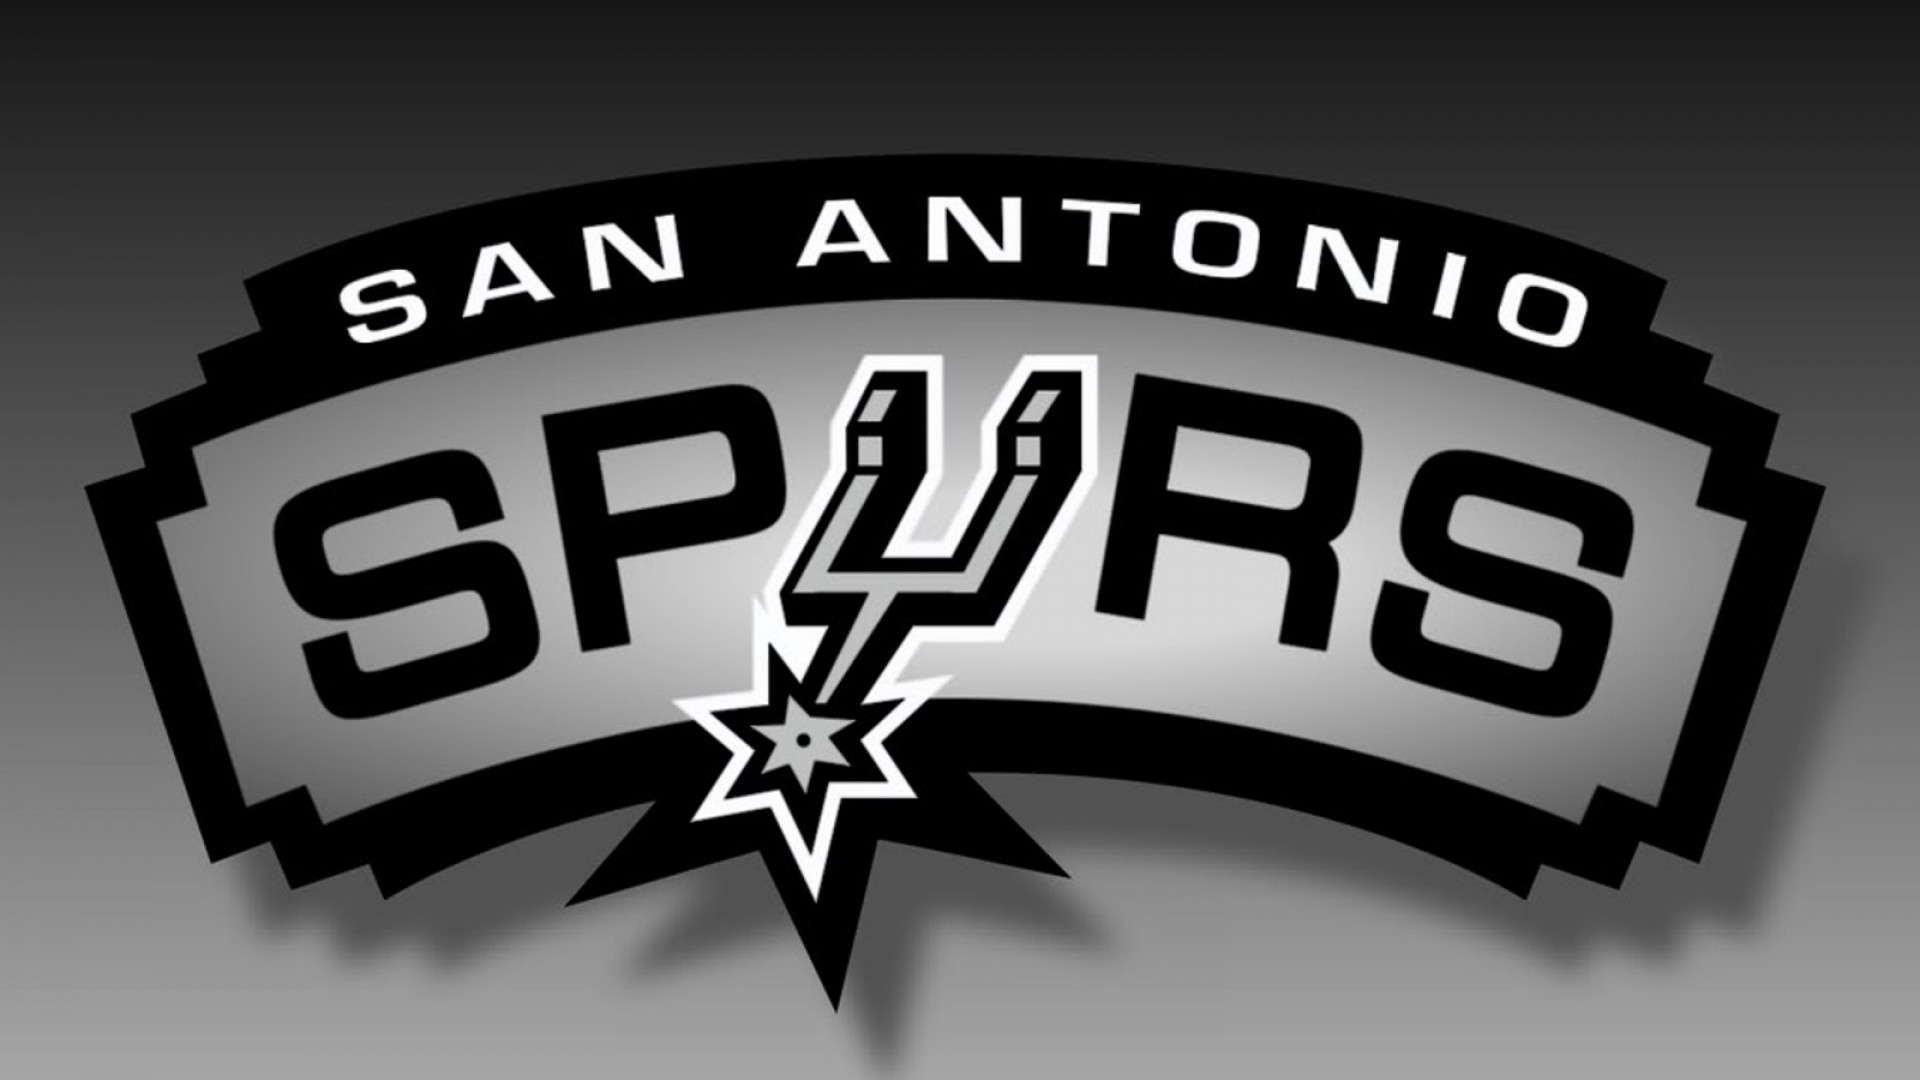 wallpapers animal puppy wallpaper hd amusing san antonio spurs 1920x1080